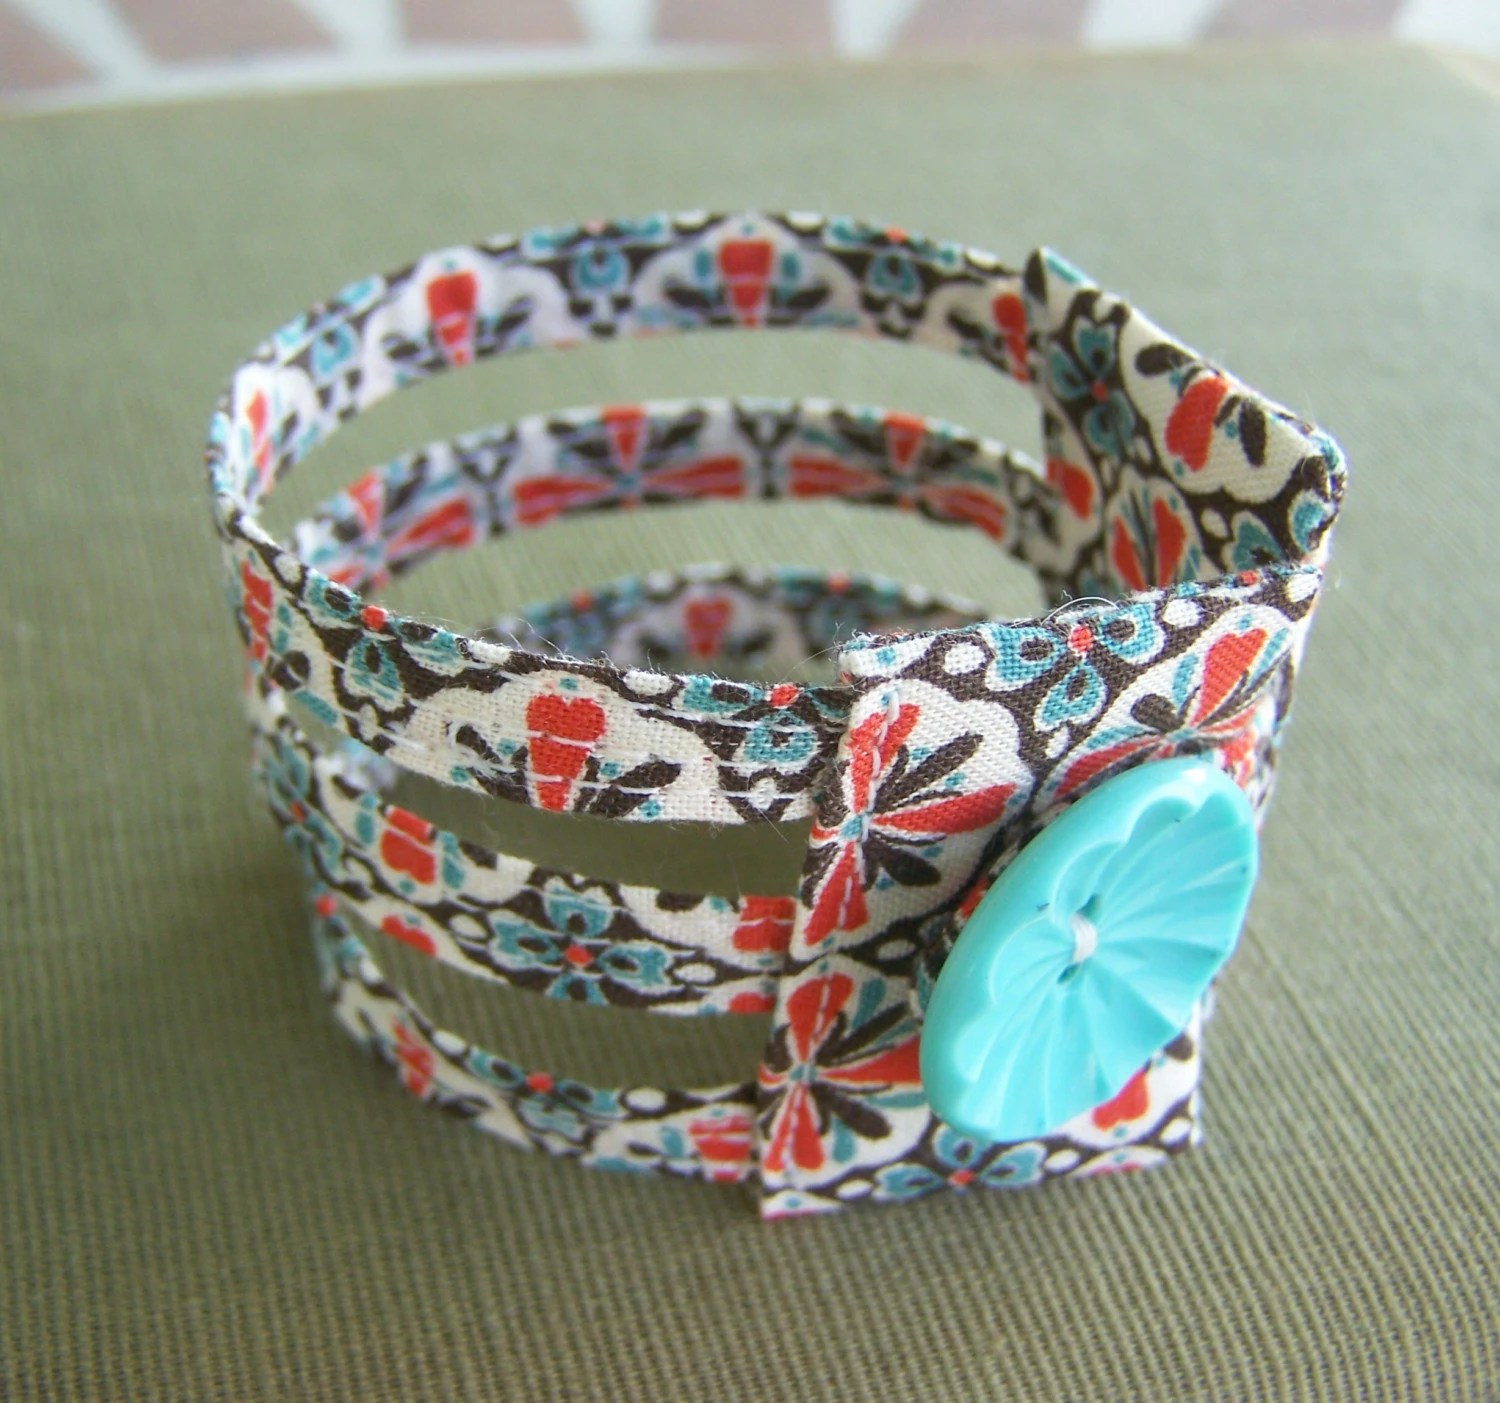 Triple strand retro print fabric cuff bracelet in the best colors ever